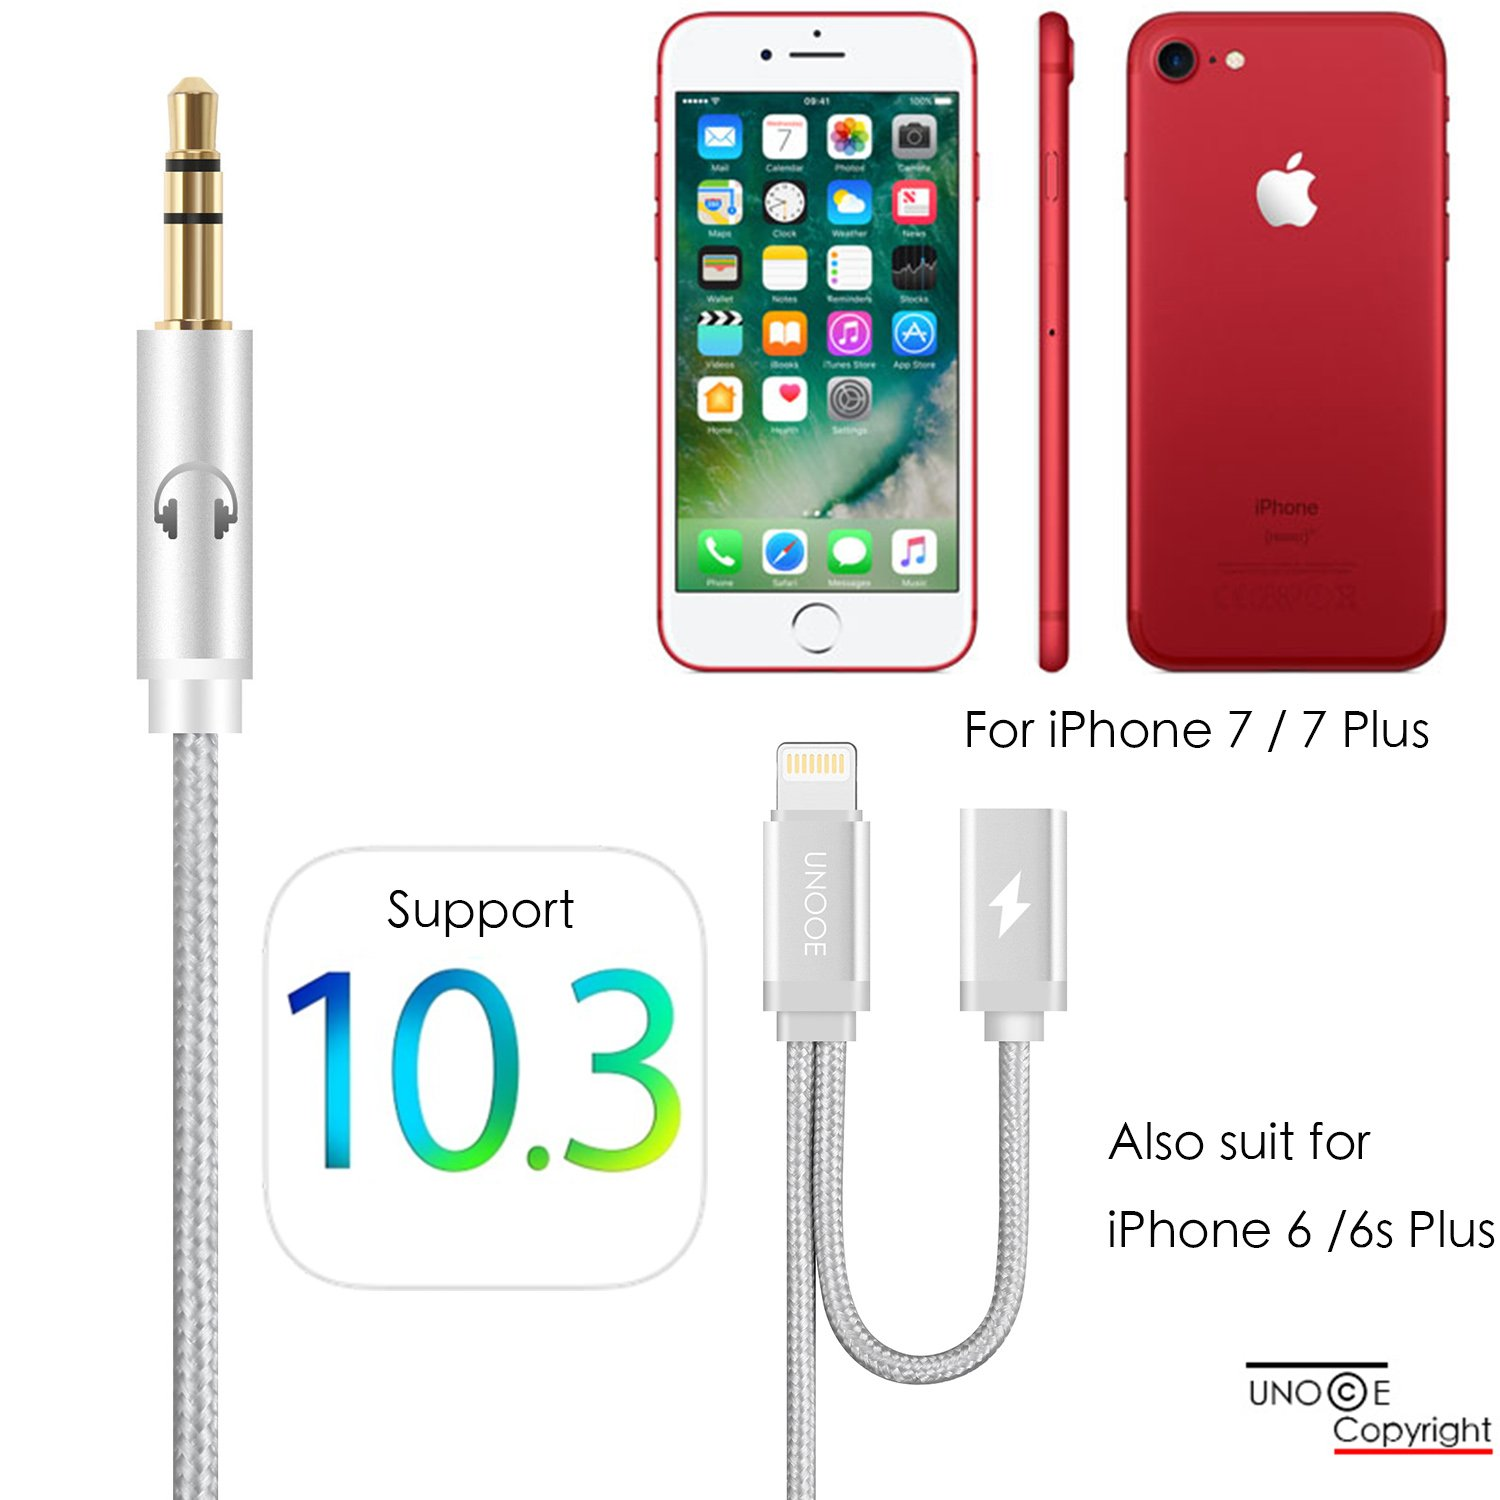 unooe iphone 8 7 aux cord and charger adapter for car. Black Bedroom Furniture Sets. Home Design Ideas